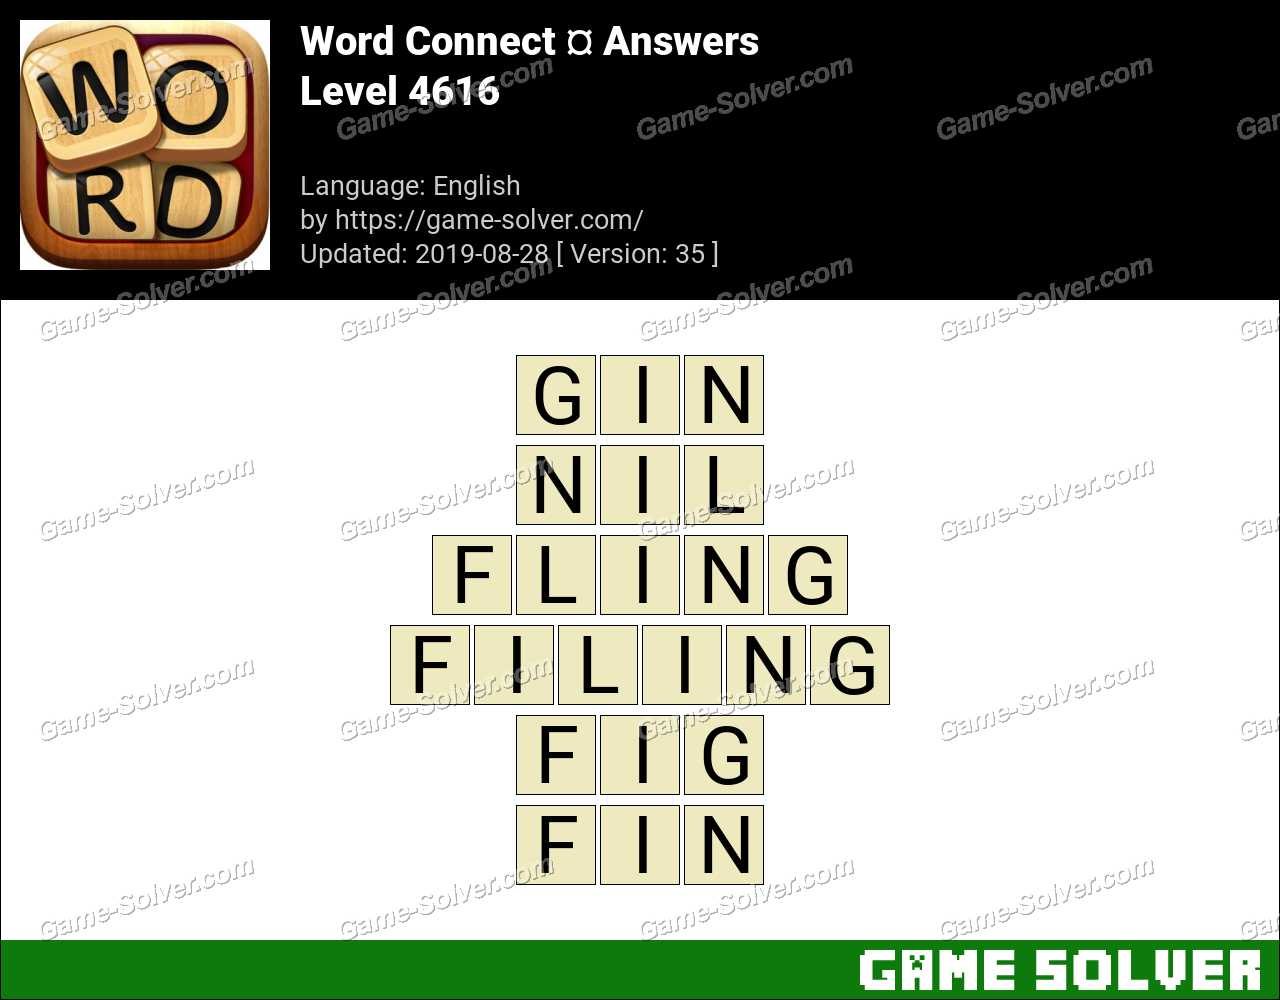 Word Connect Level 4616 Answers